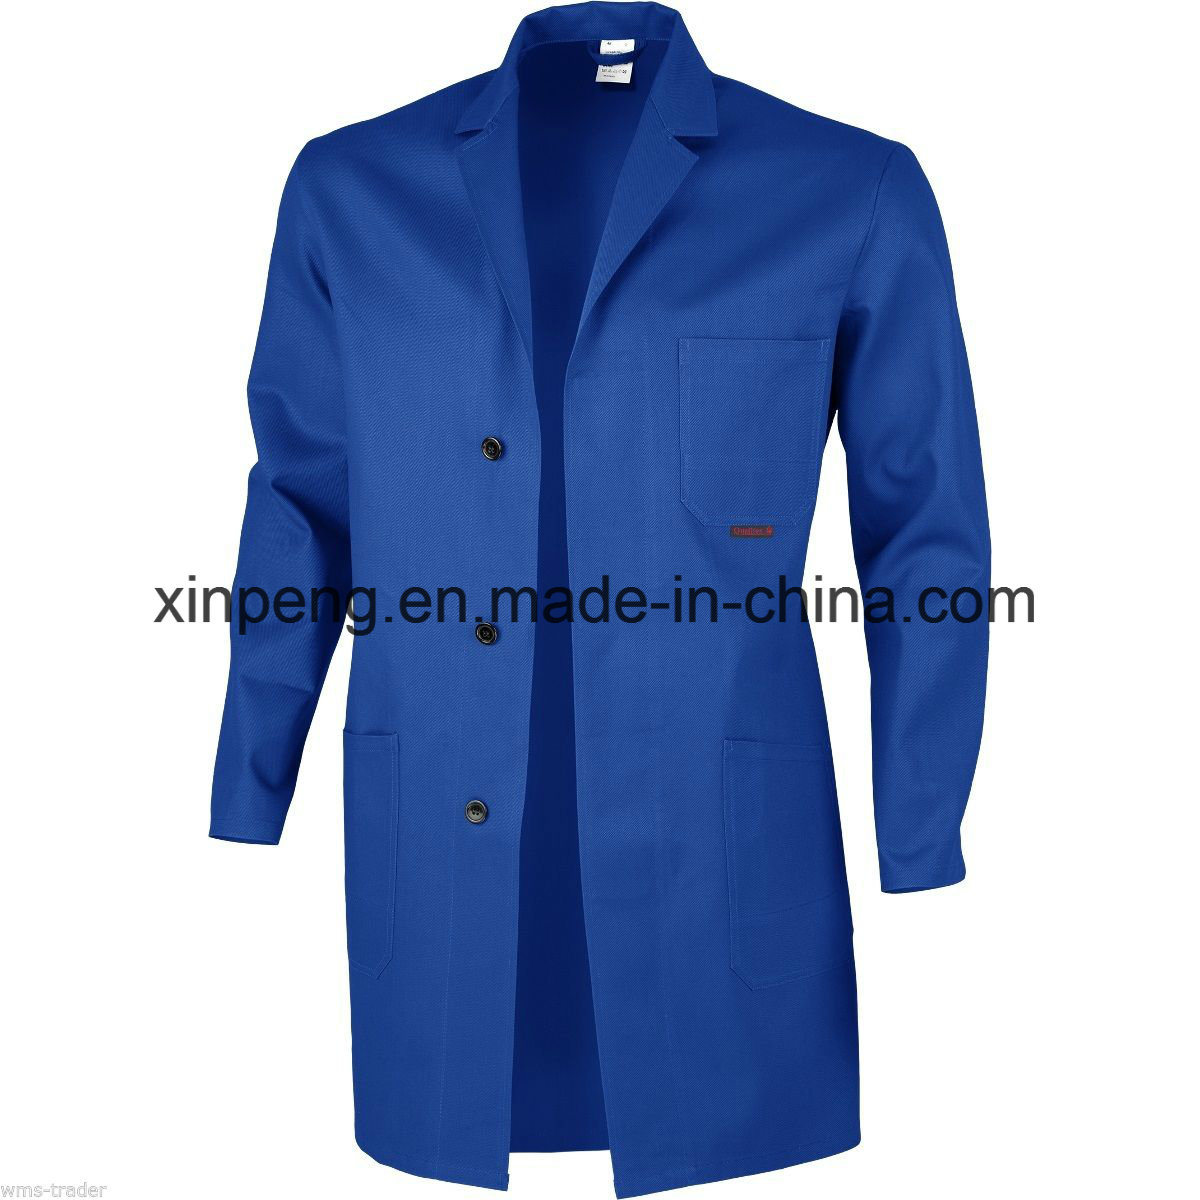 La′b Coat Basic Design with 3 Pockets